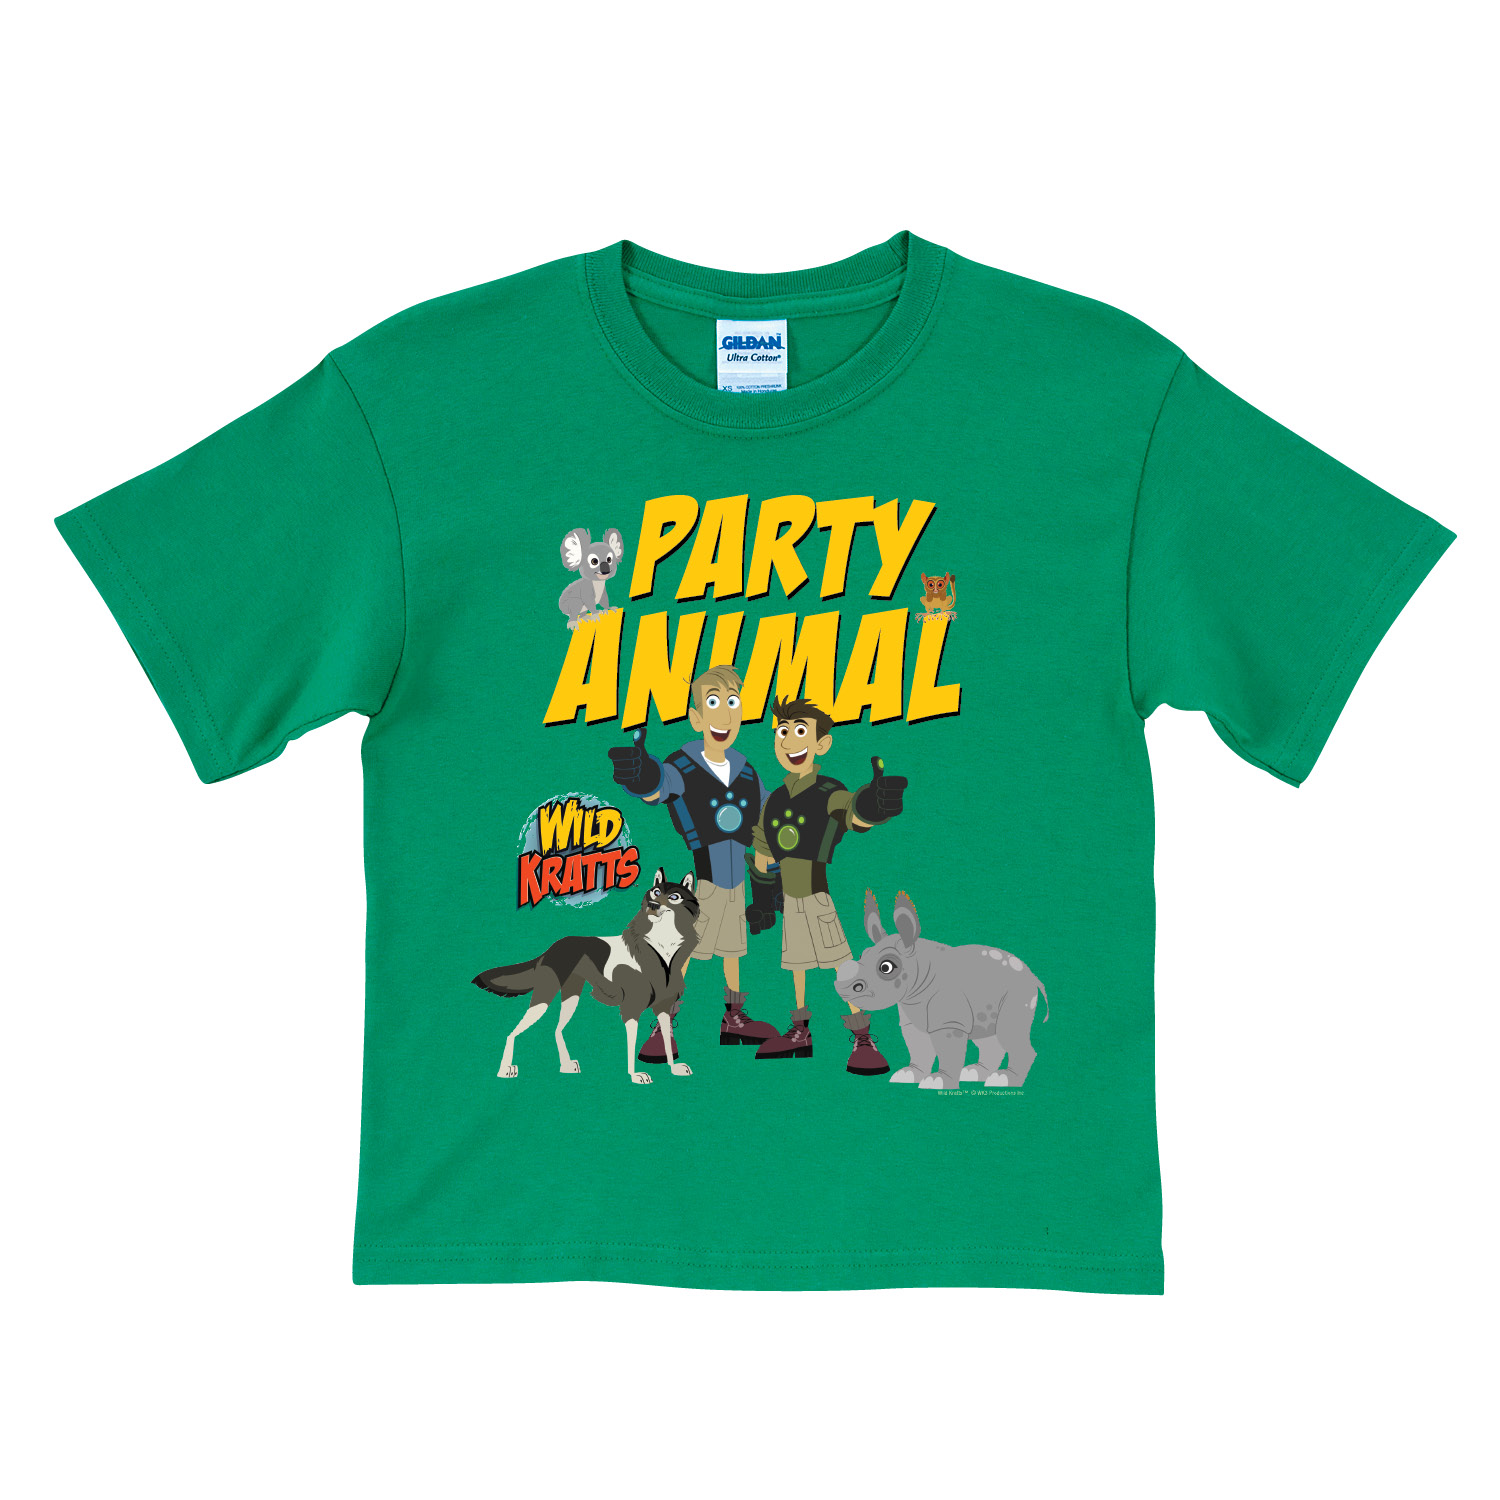 Buy Wild Kratts Party Animal Green T-Shirt